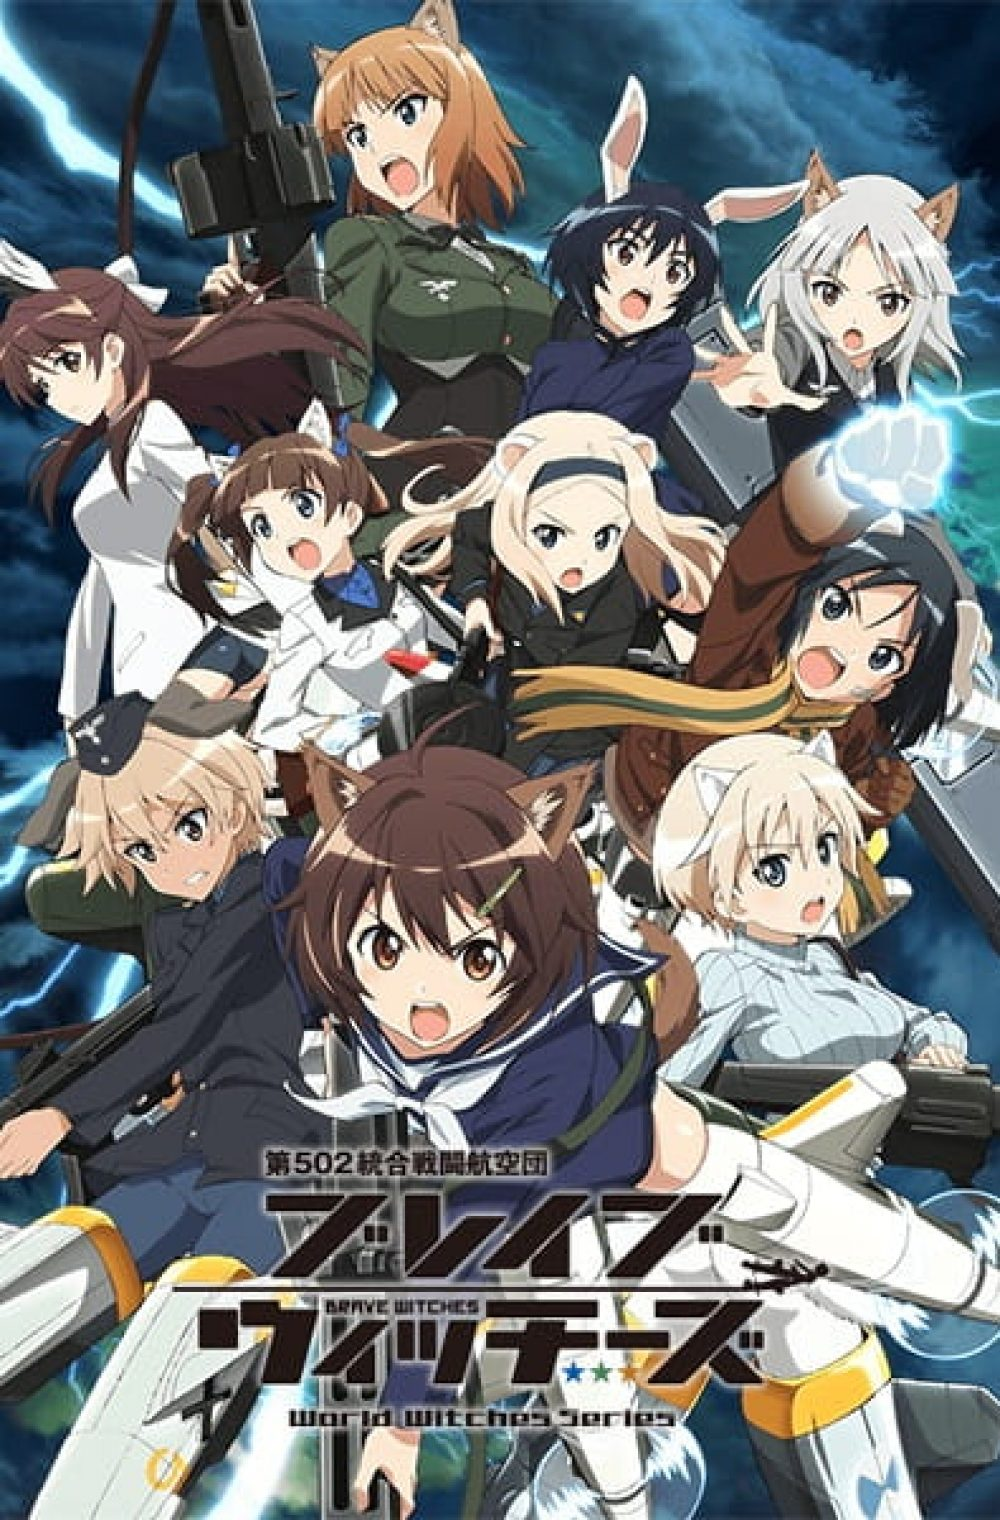 Brave Witches (UNCENSORED)